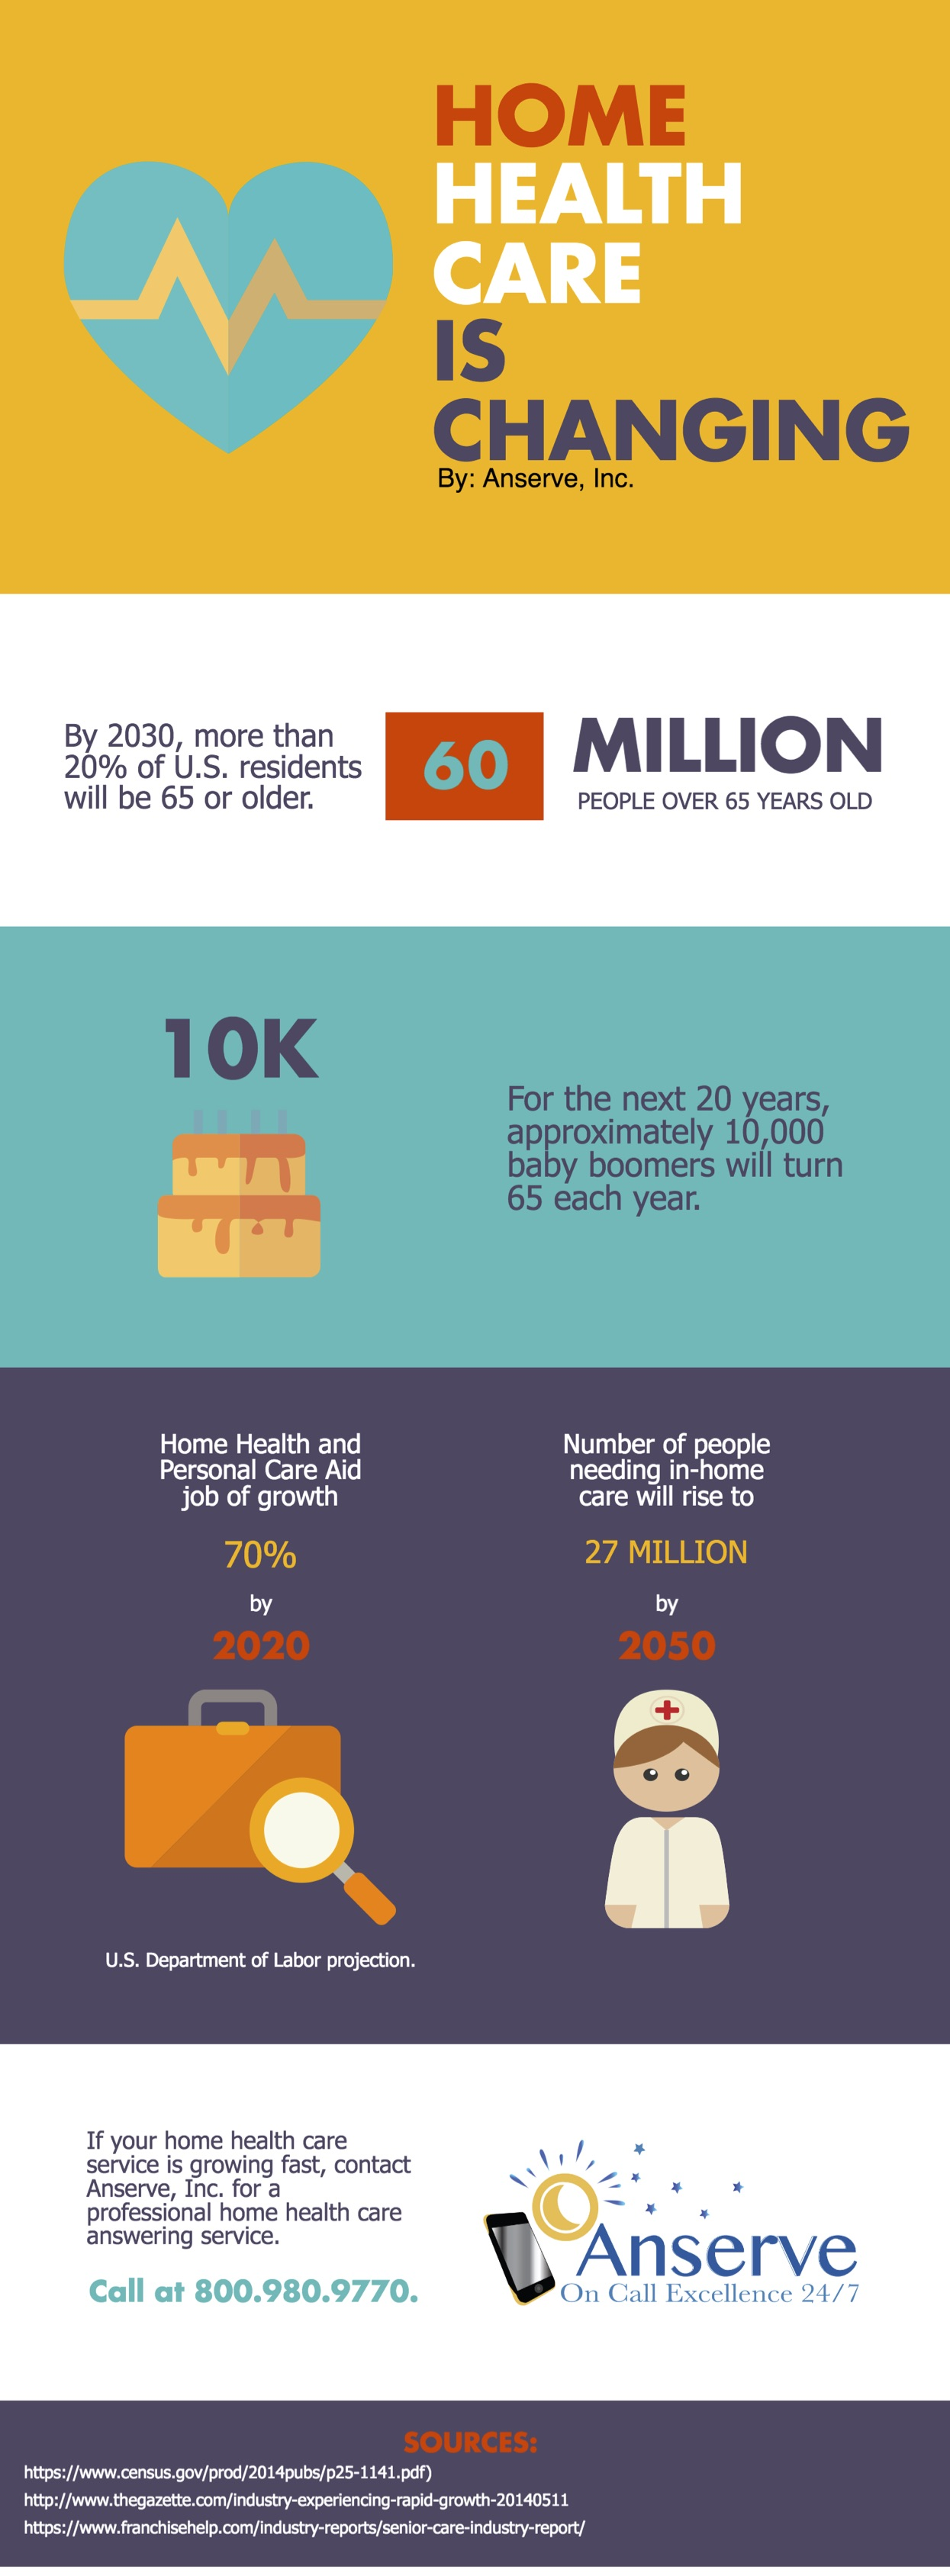 Home Health Care Answering Service Infographic